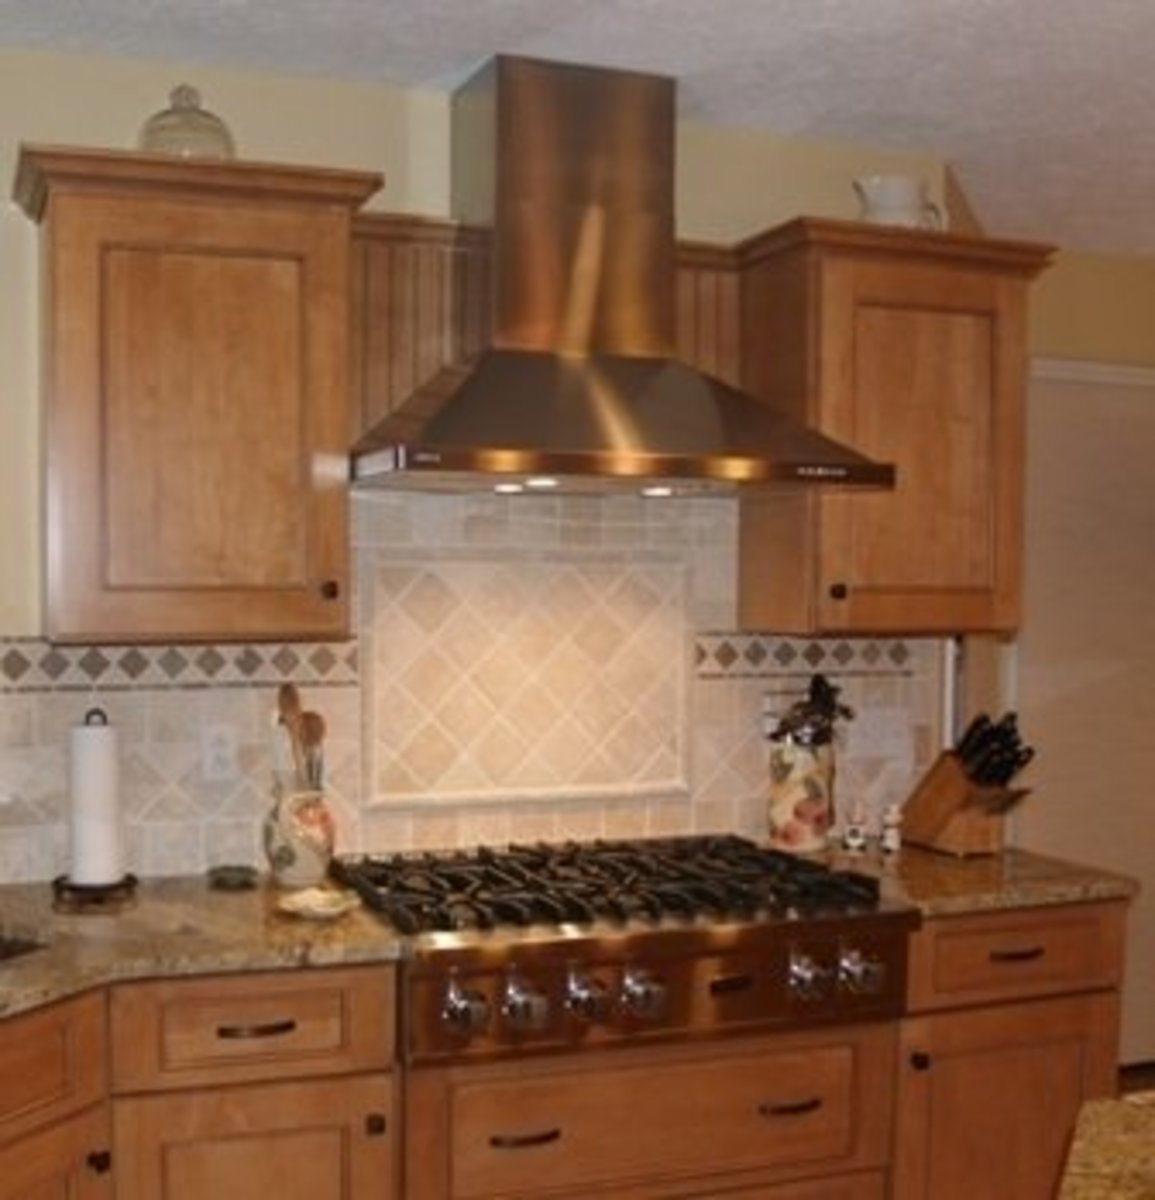 planning-your-kitchen-buyer-be-aware